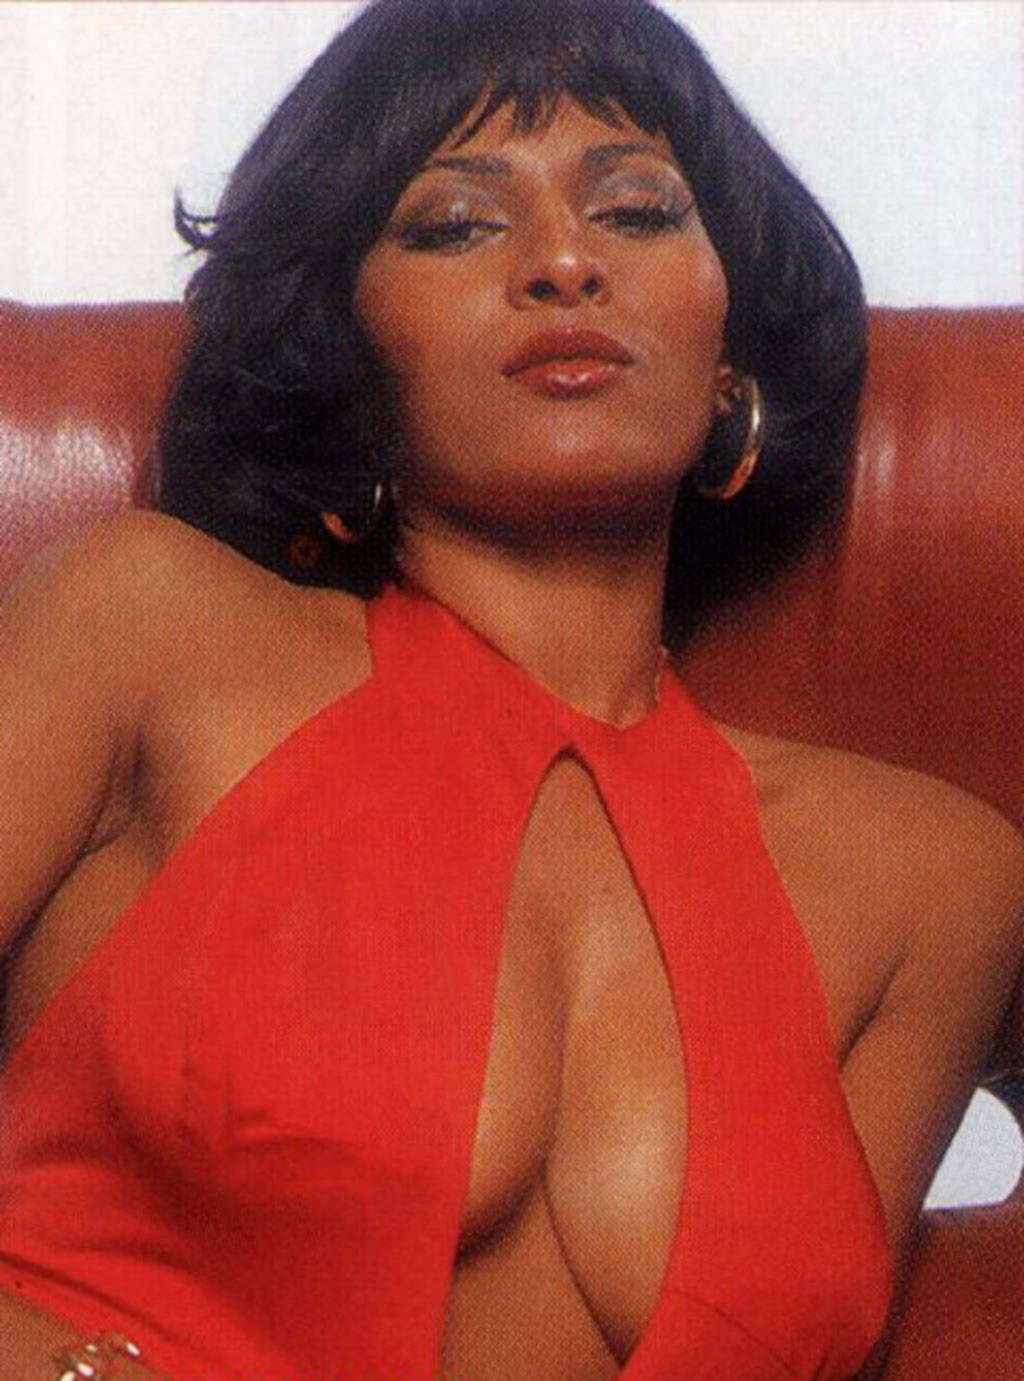 1970's celebrity boobs | filthy